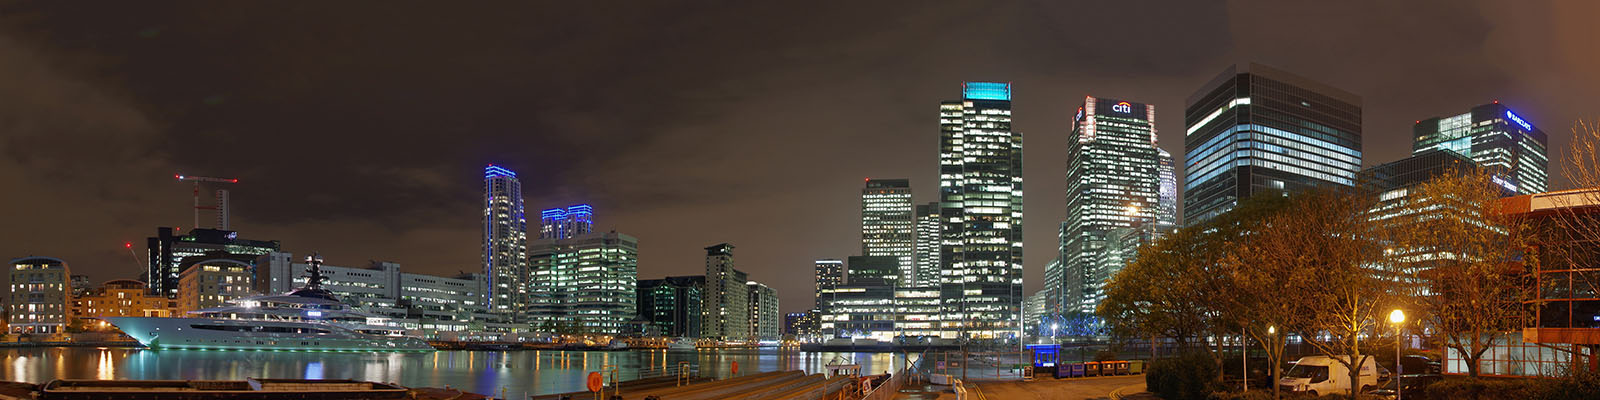 Panorama over the City Canal and Canary Wharf from near Wood Wharf.